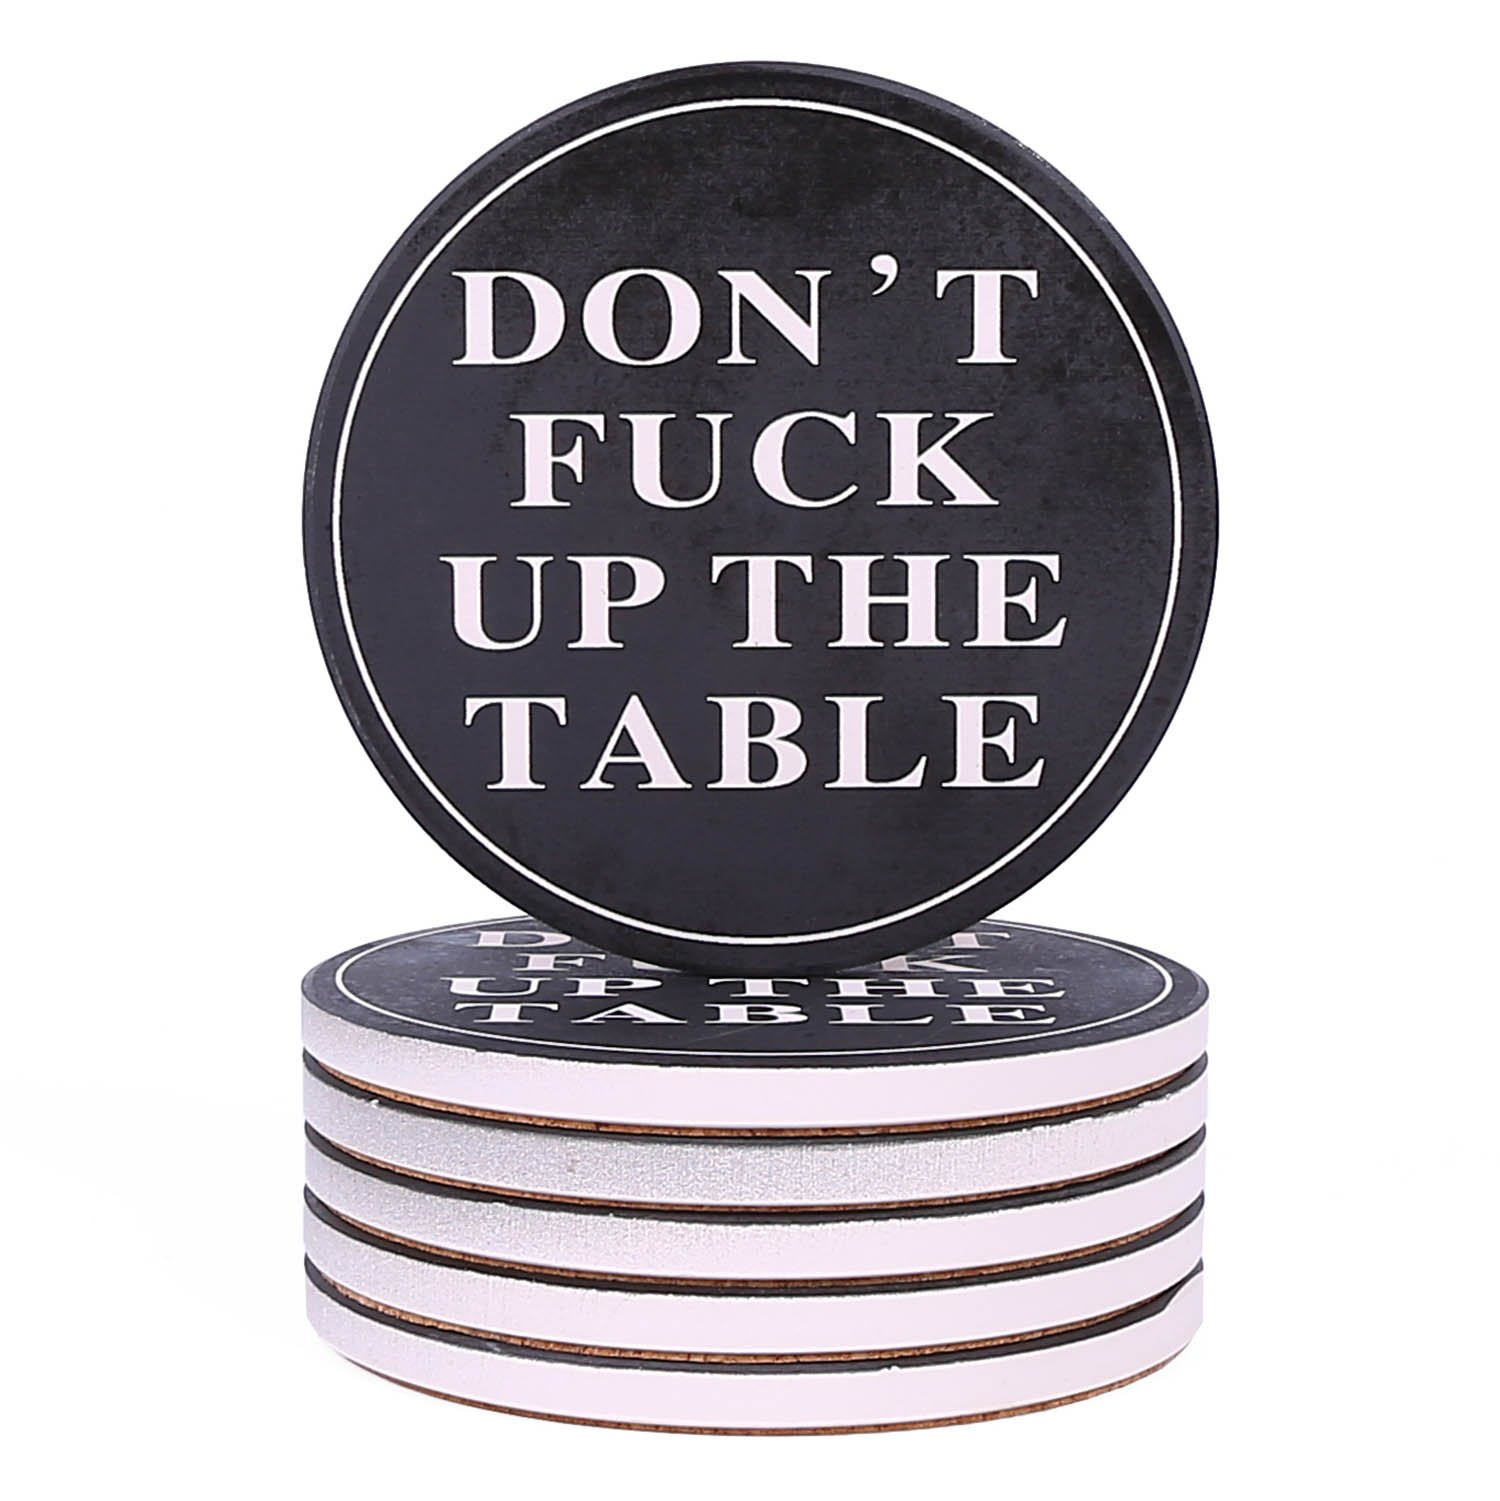 Coasters For Drinks Absorbent - DON'T FΛCK UP MY TABLE - Passive Aggressive Funny Coaster Set 6 Pack In Black With Cork Backing, Prevent Furniture from Dirty and Scratched